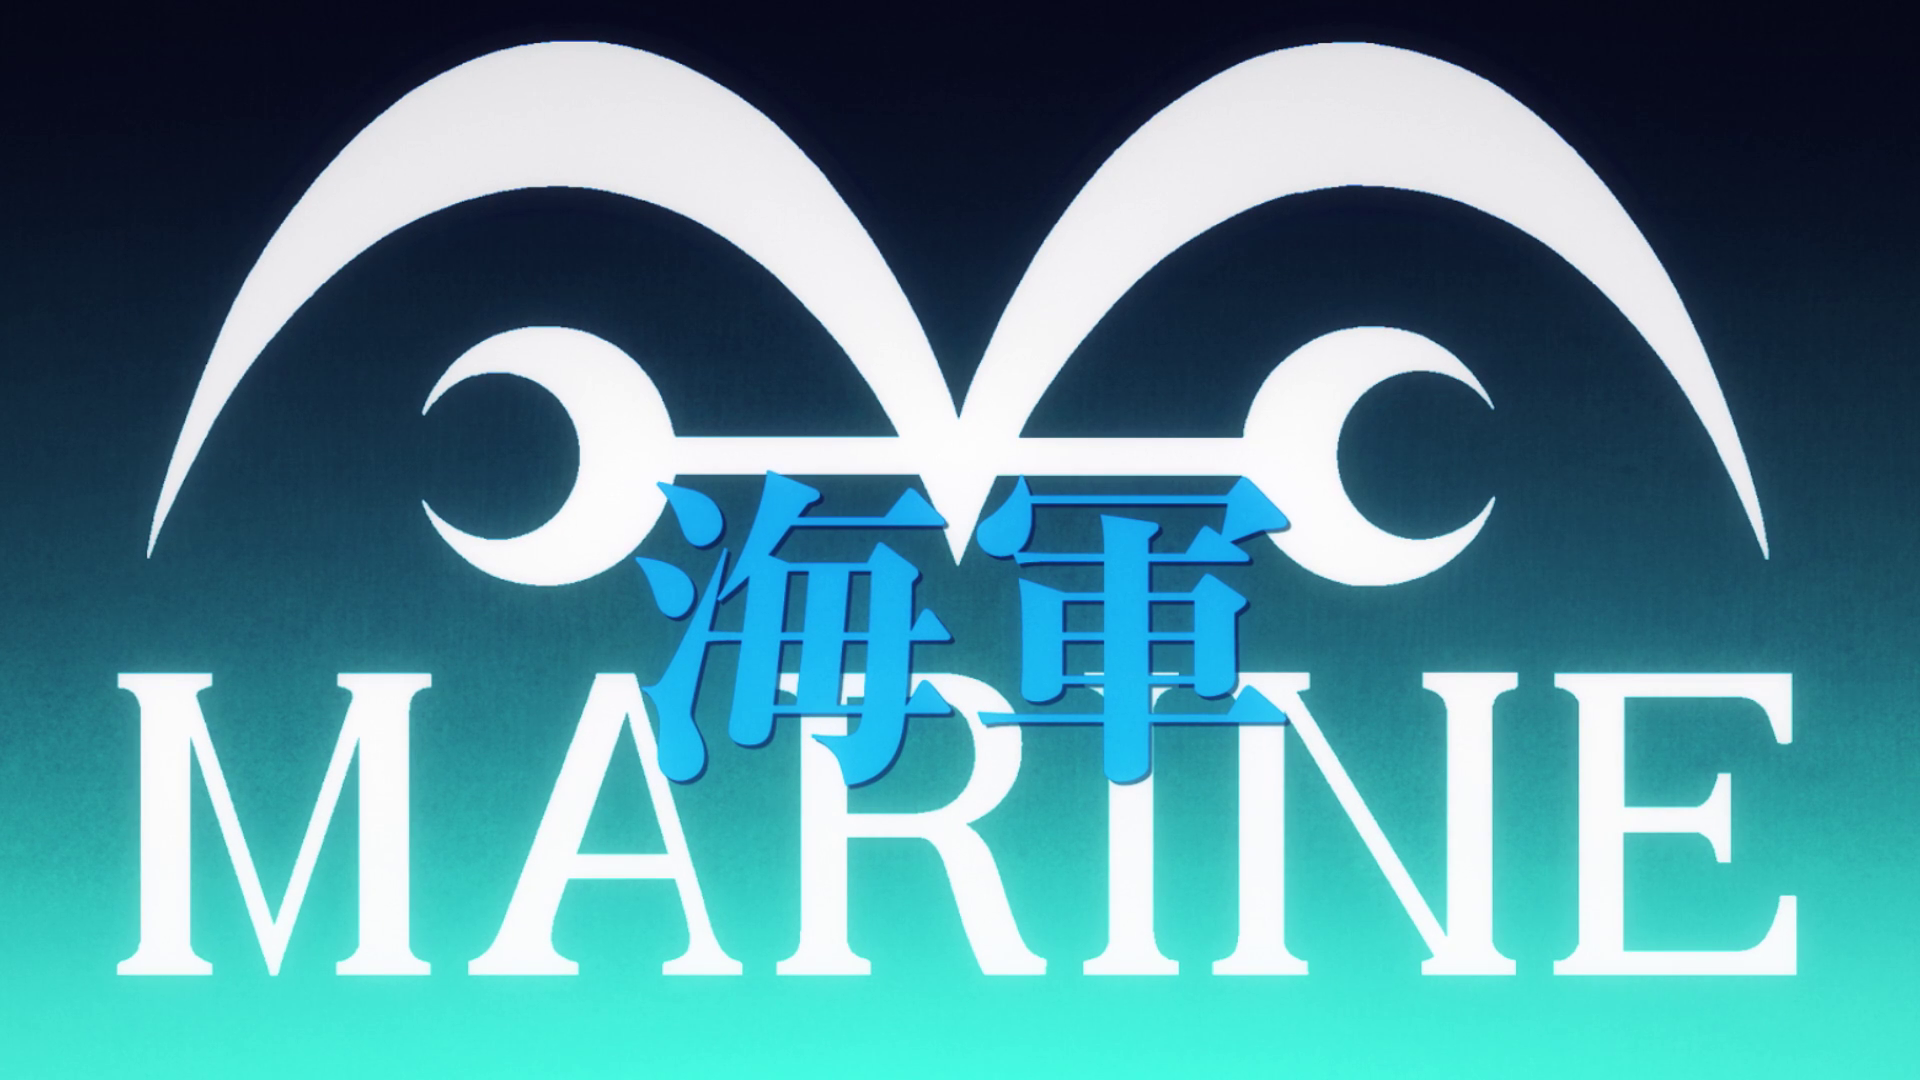 Does Anyone Know What This Symbol Represents Onepiece